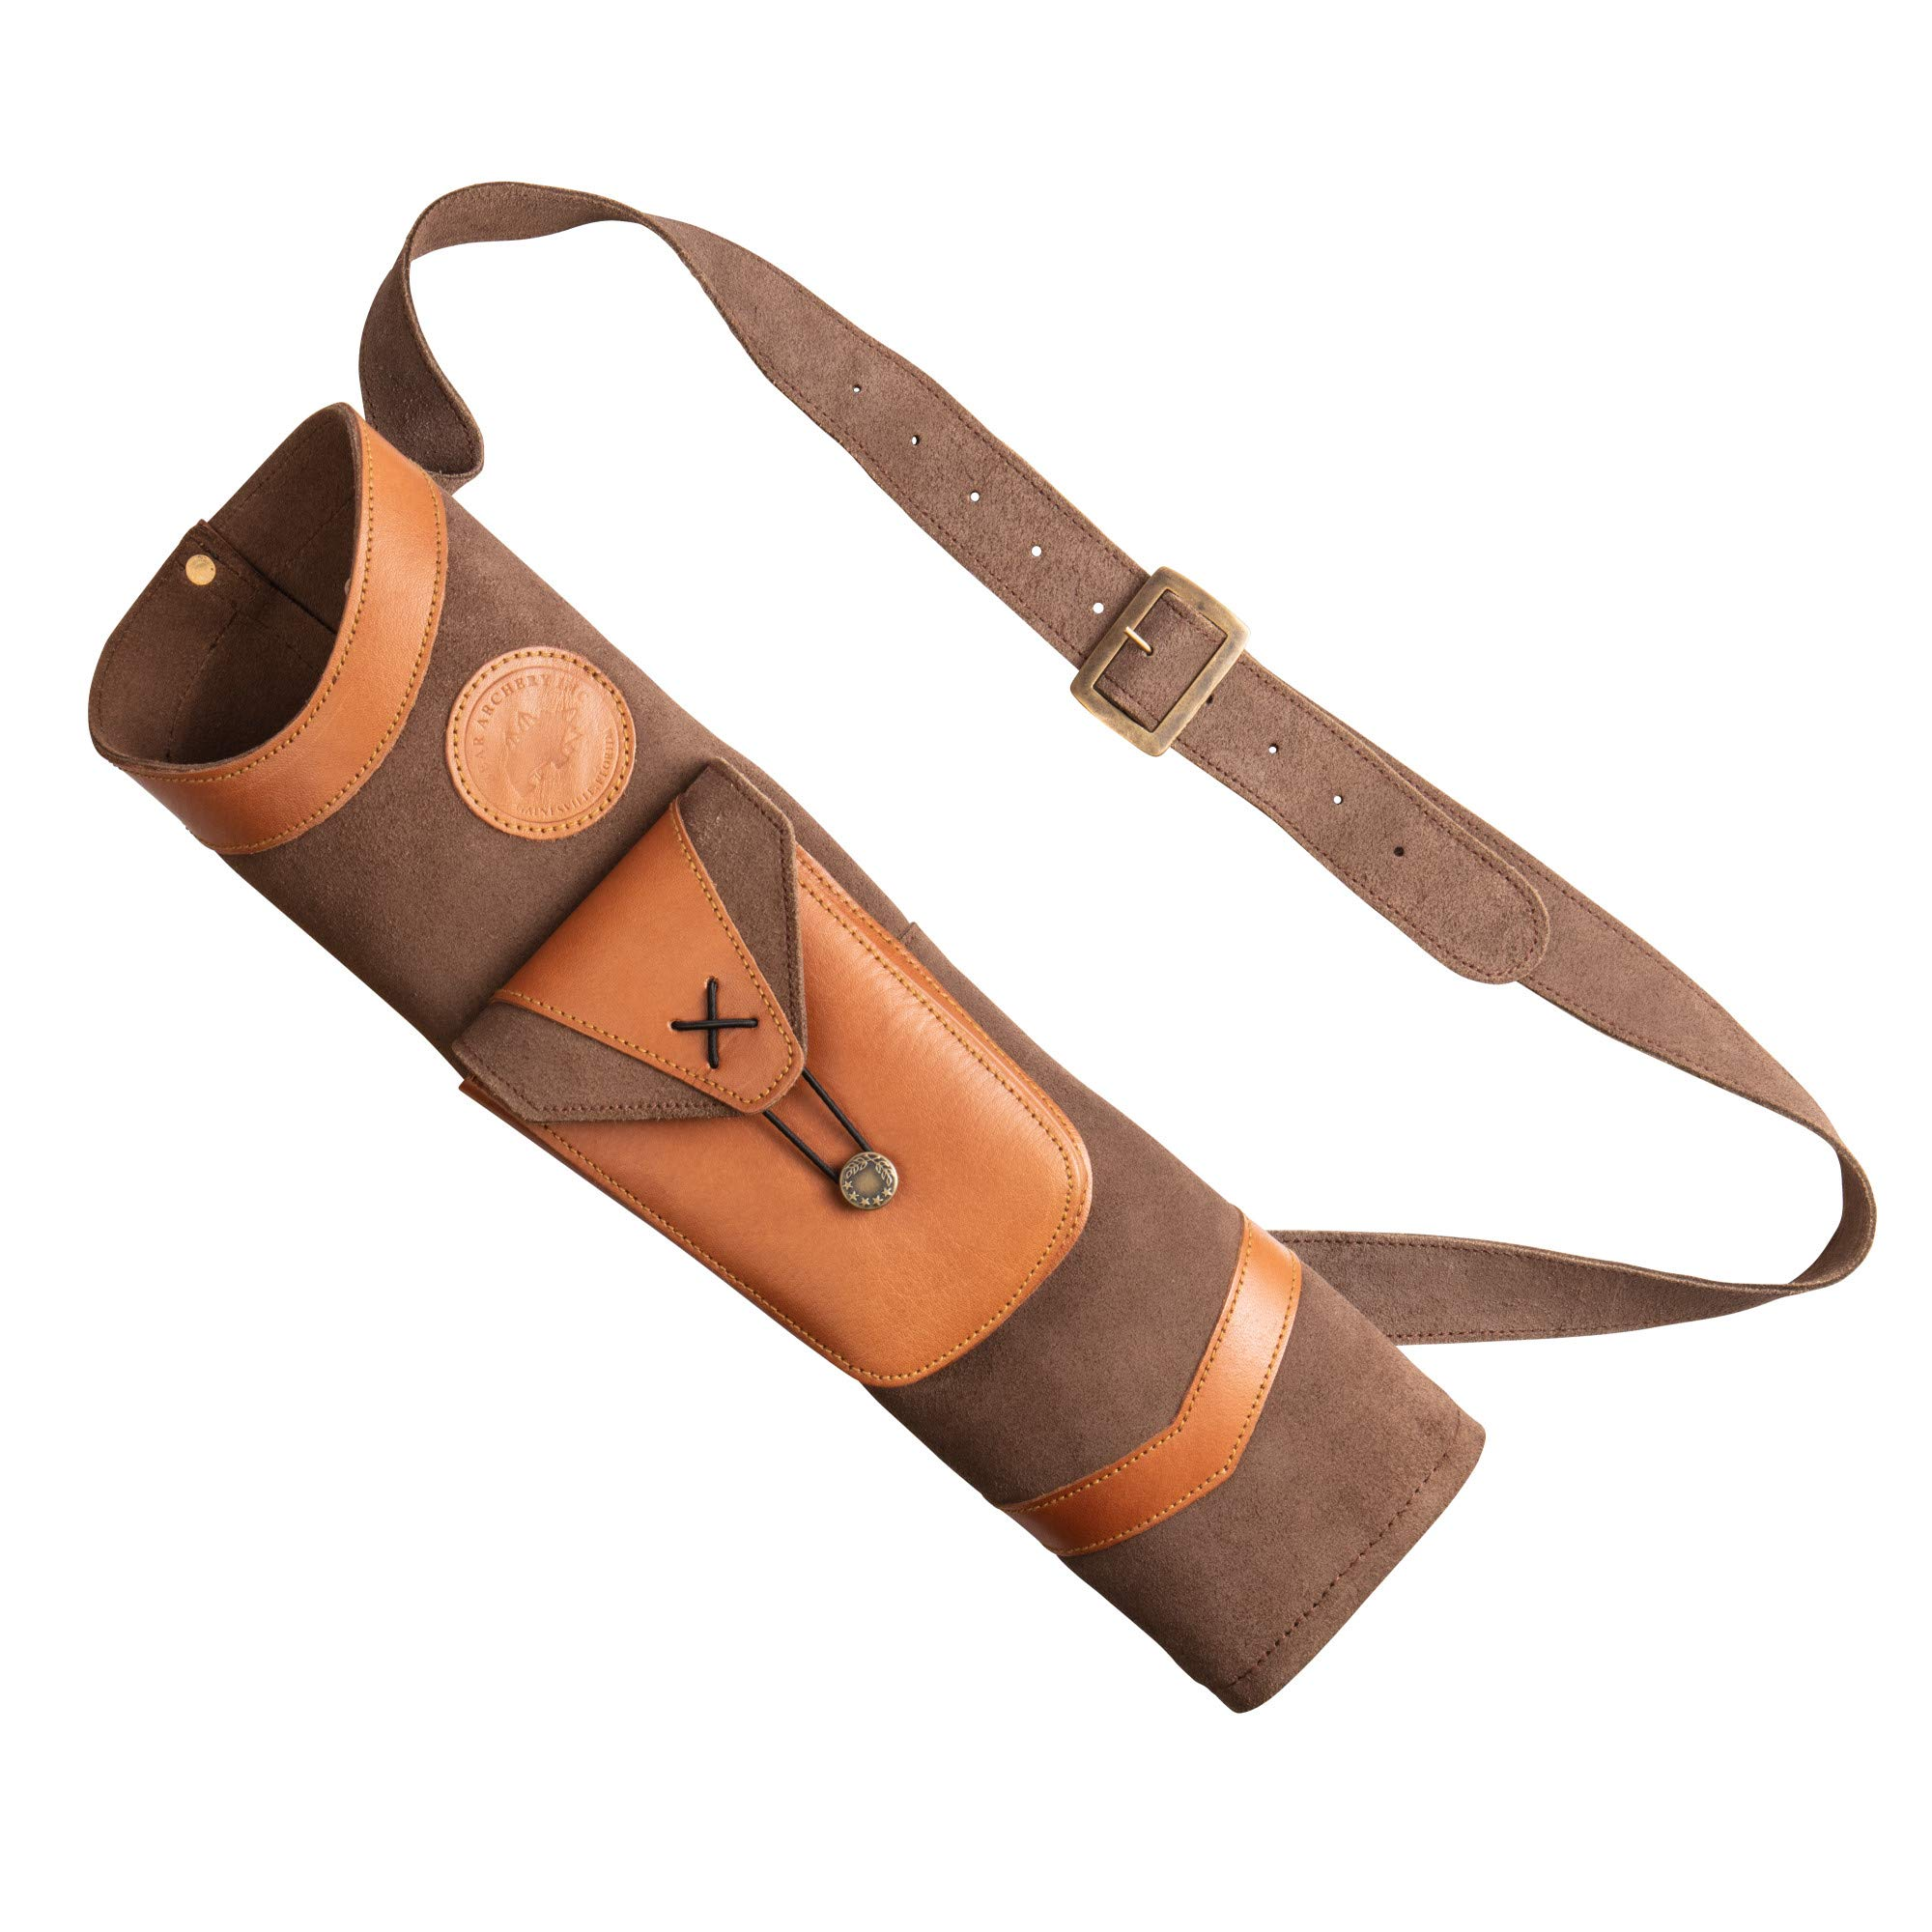 Bear Archery Superlite Traditional Shoulder Back Leather Arrow Quiver with Large Pouch, Brown, One Size (AT100BQ)